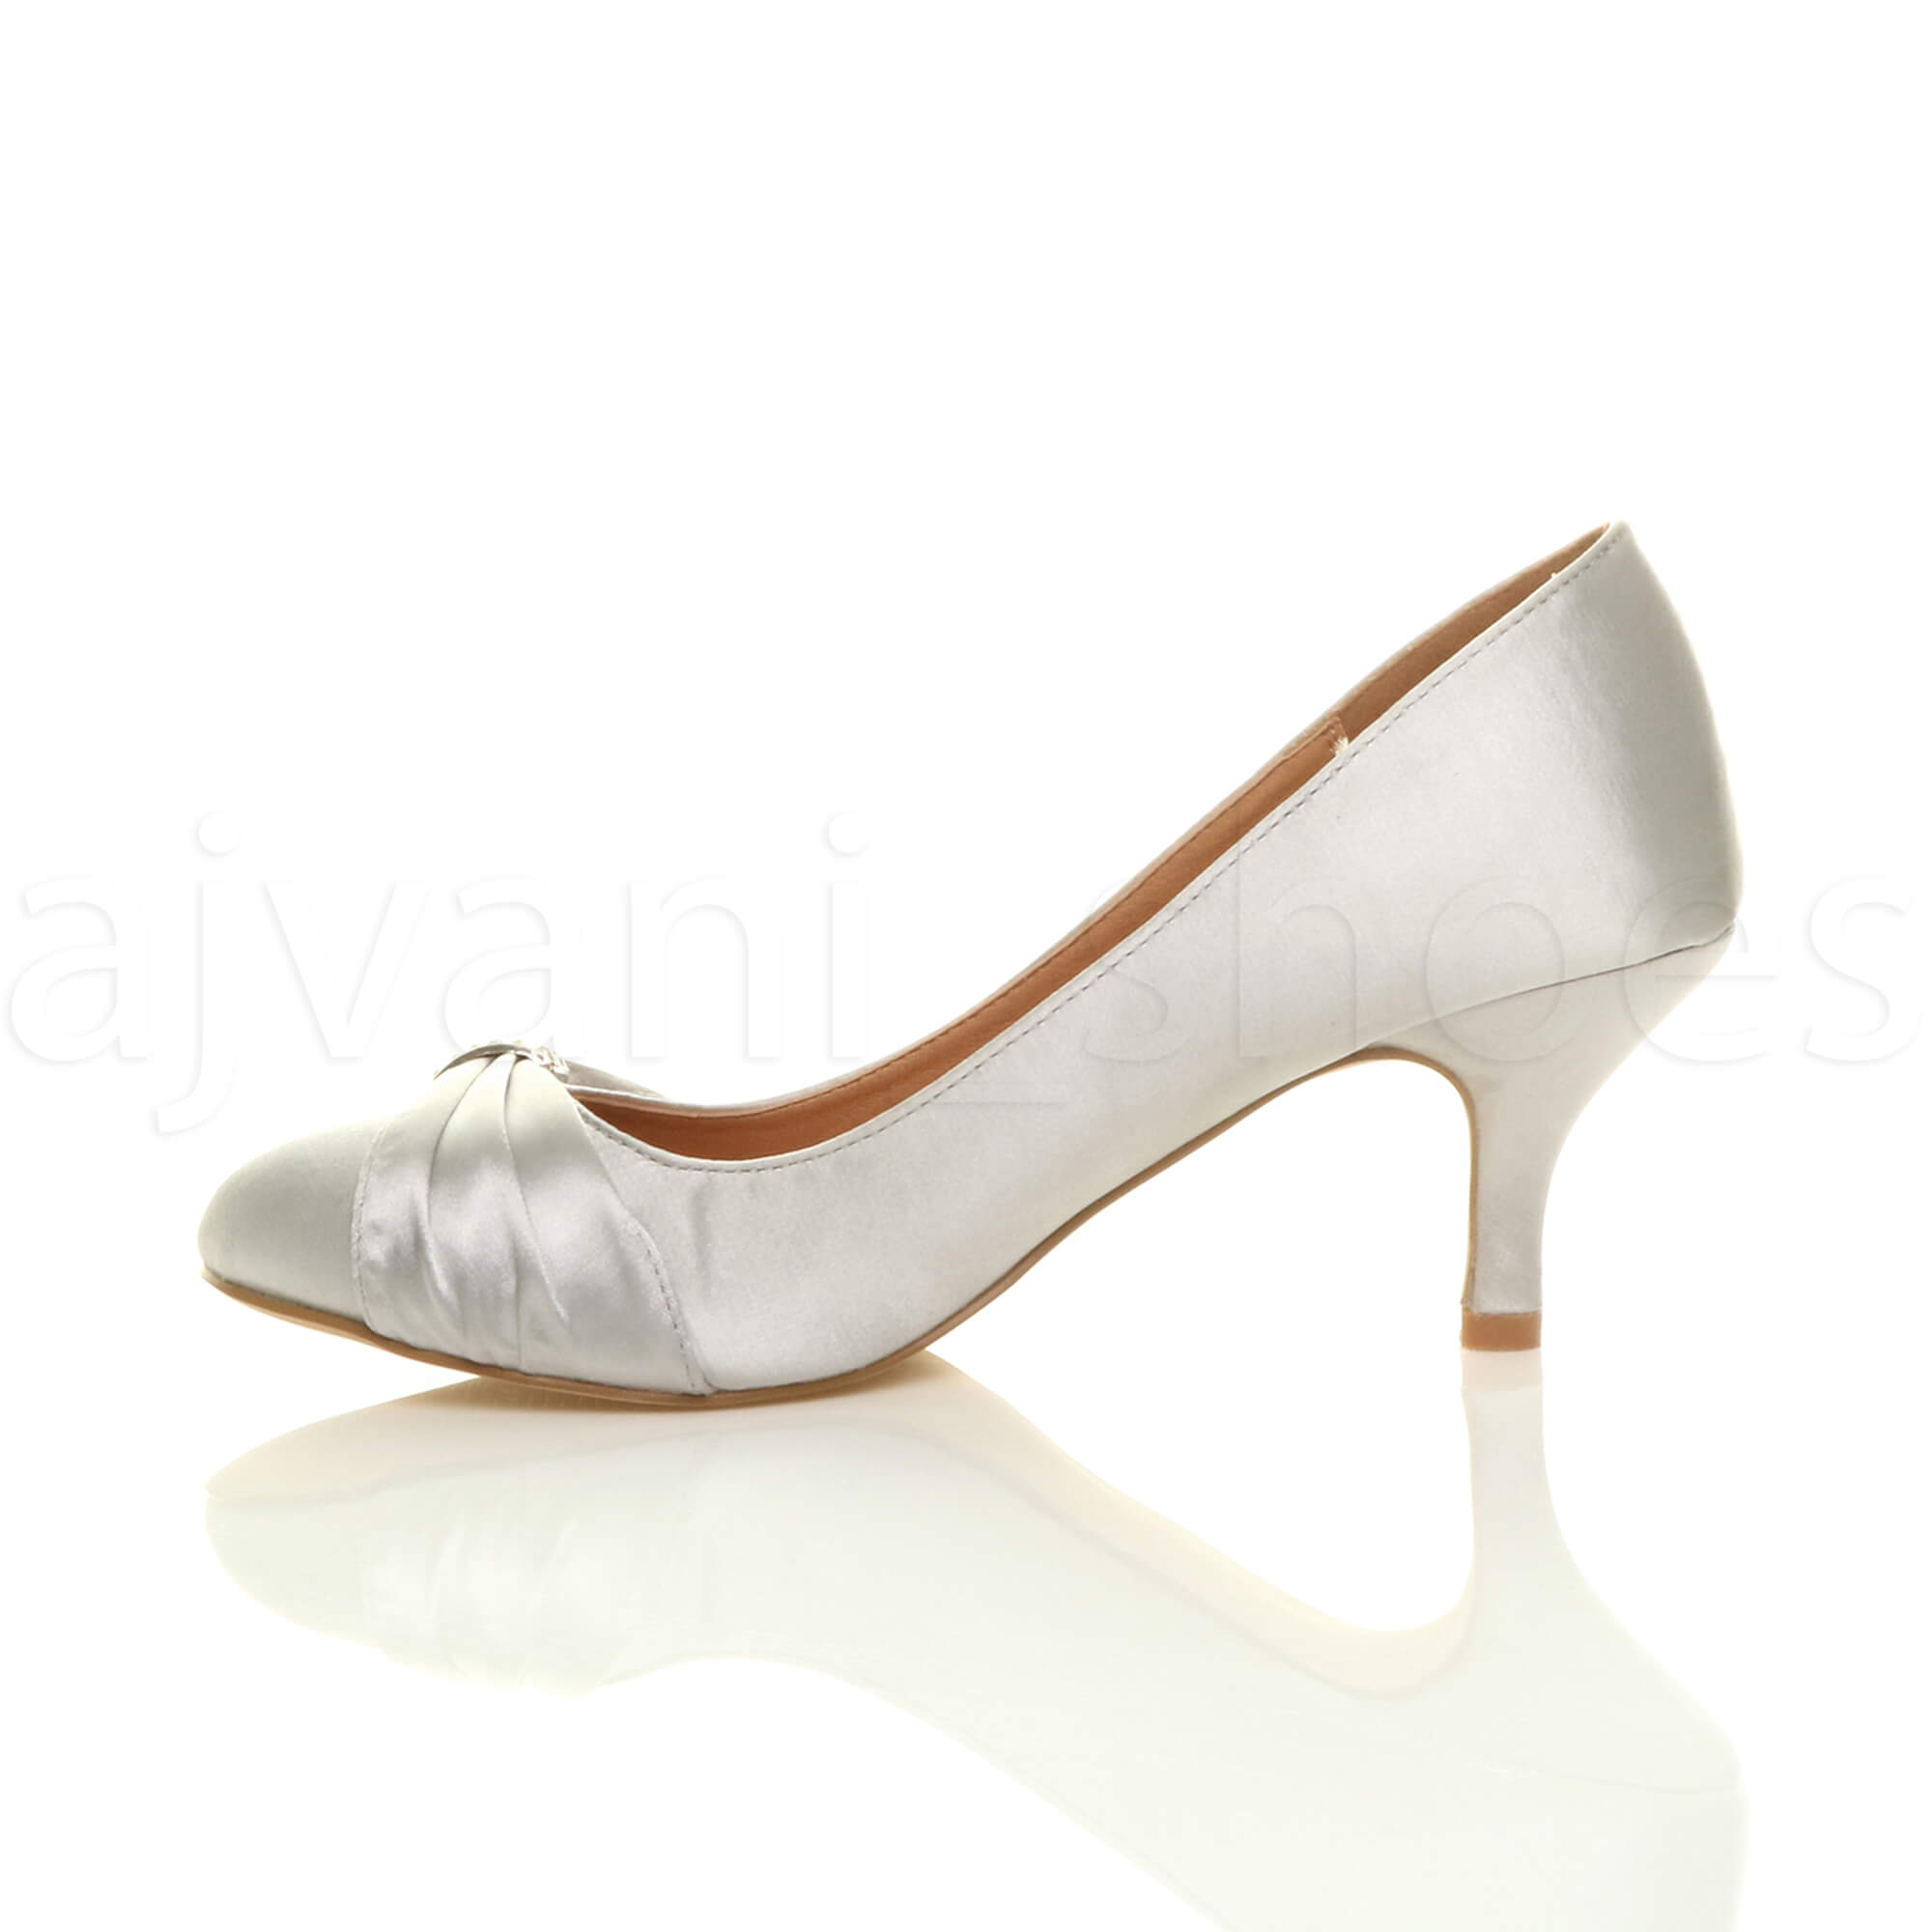 WOMENS-LADIES-MID-HEEL-RUCHED-DIAMANTE-WEDDING-PROM-EVENING-COURT-SHOES-SIZE thumbnail 92